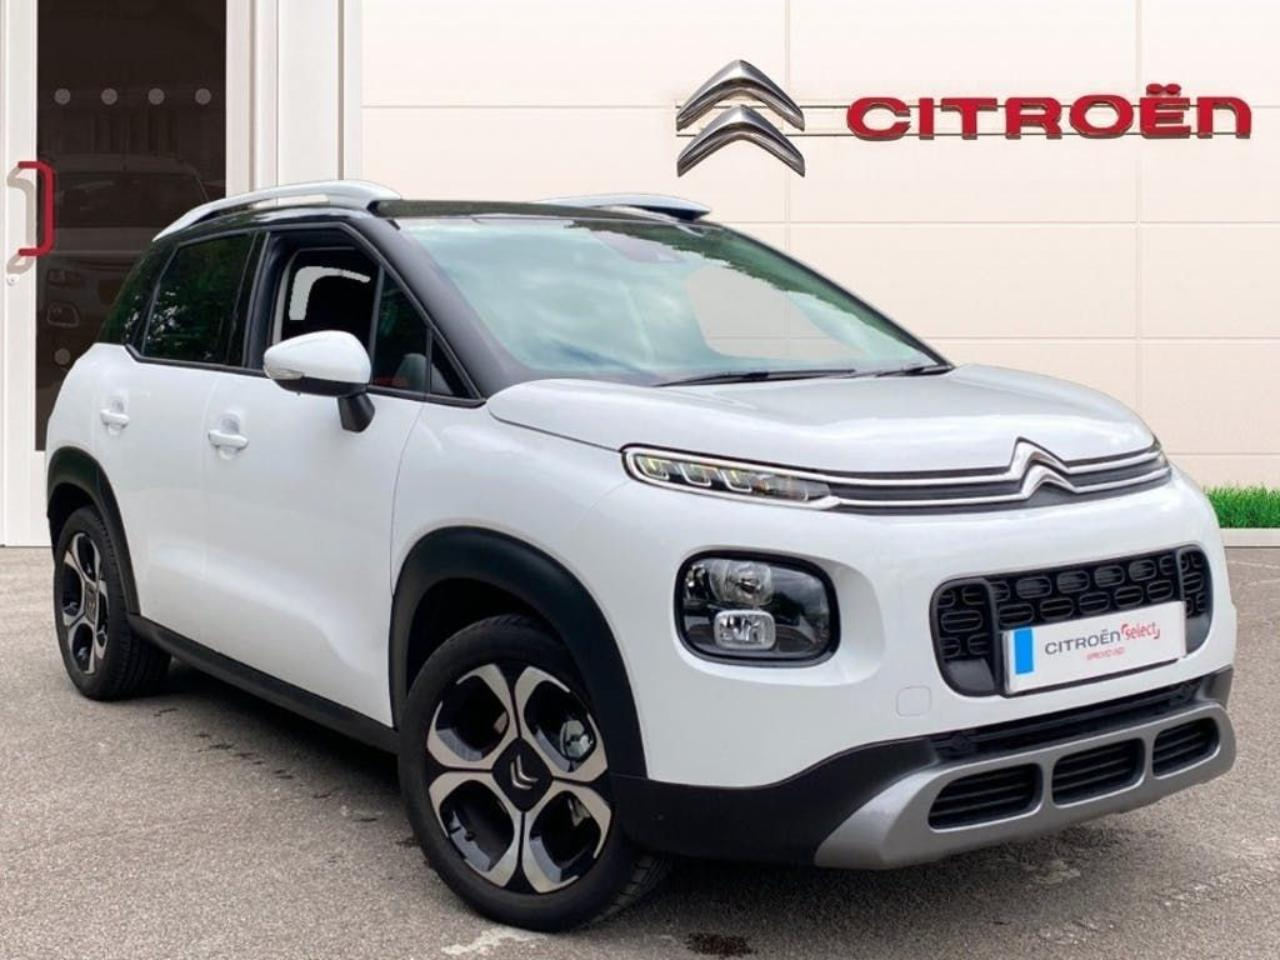 Citroën C3 Aircross 1.2 PURETECH 130PS FLAIR 5DR EAT6 AUTO